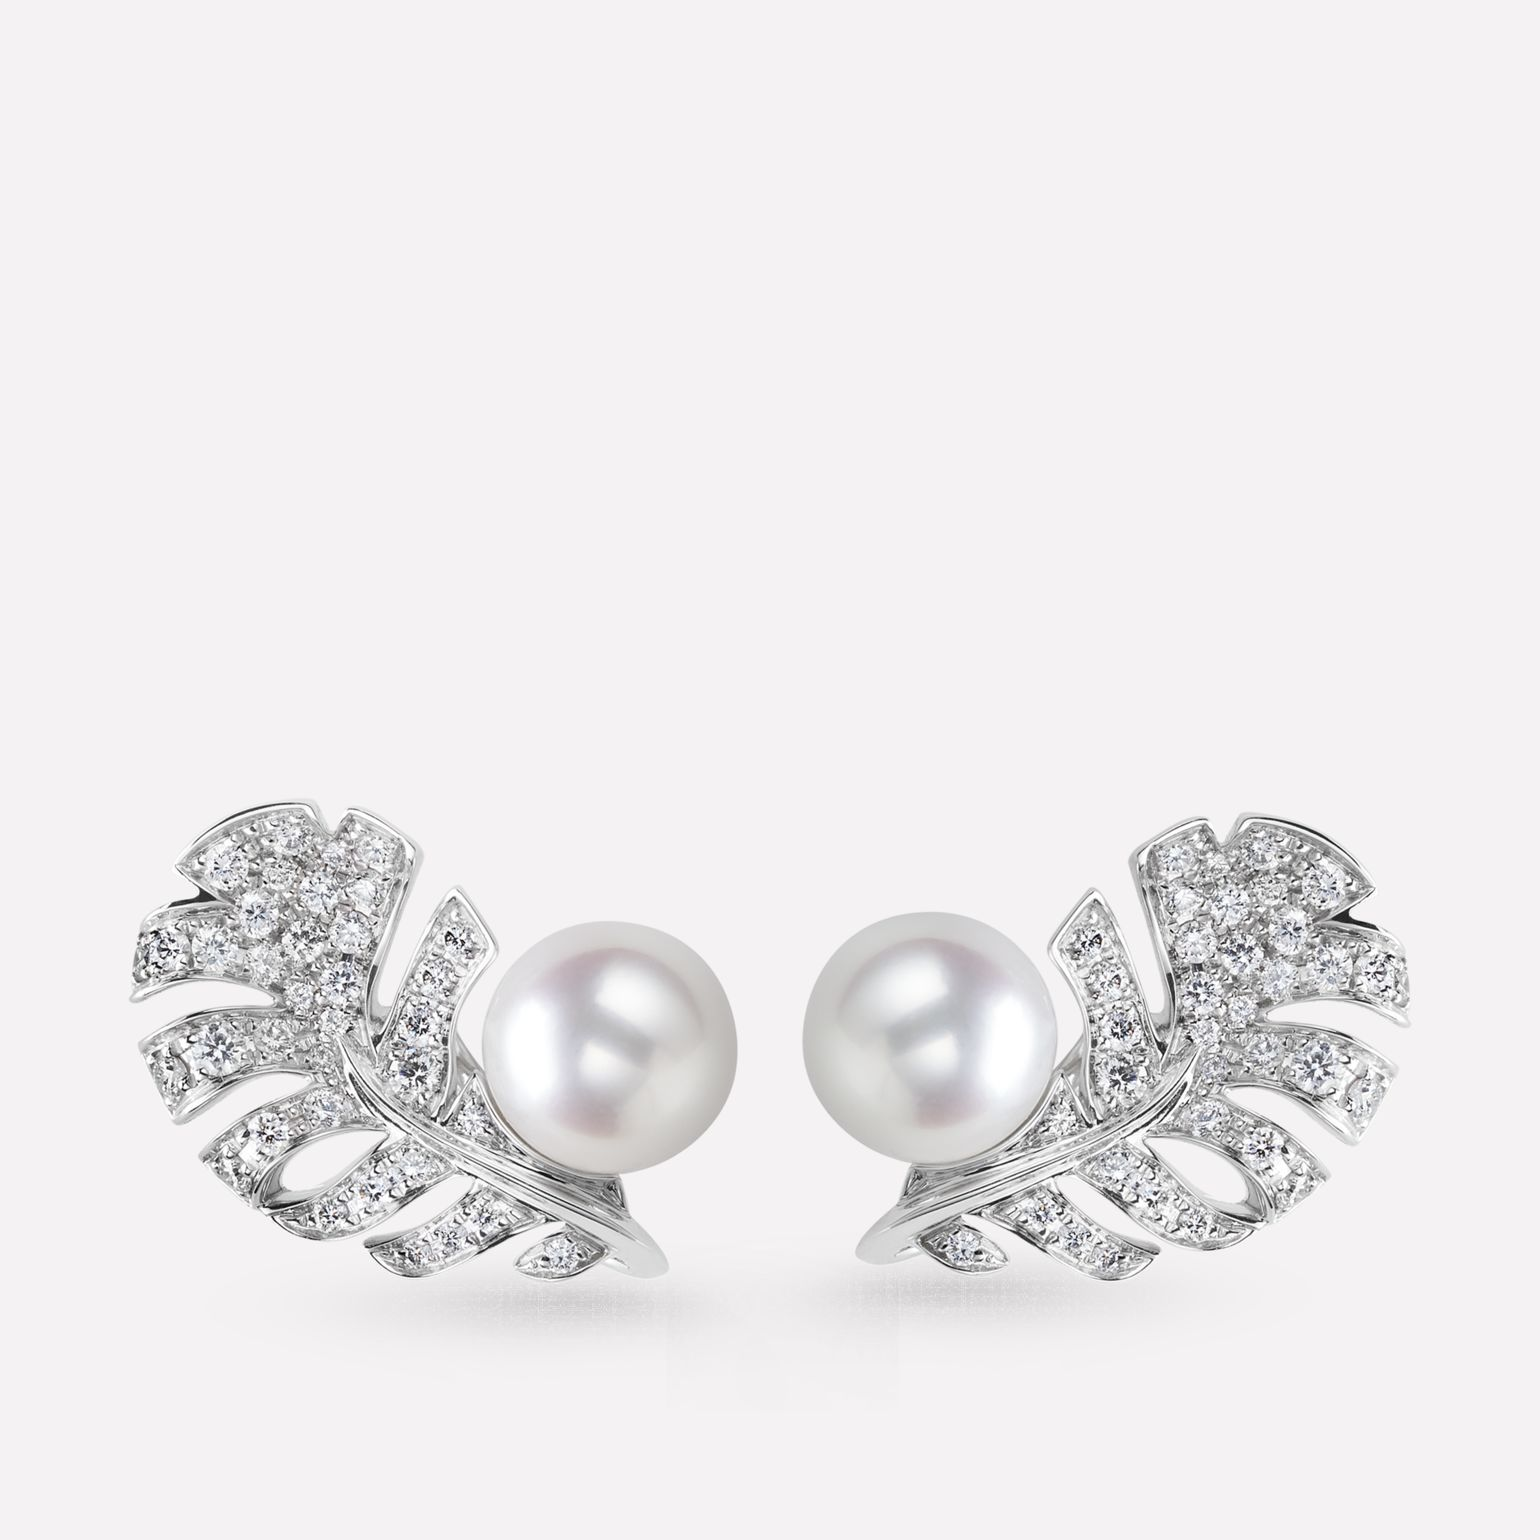 Plume de CHANEL earrings Plume earrings in 18K white gold, diamonds and cultured pearls